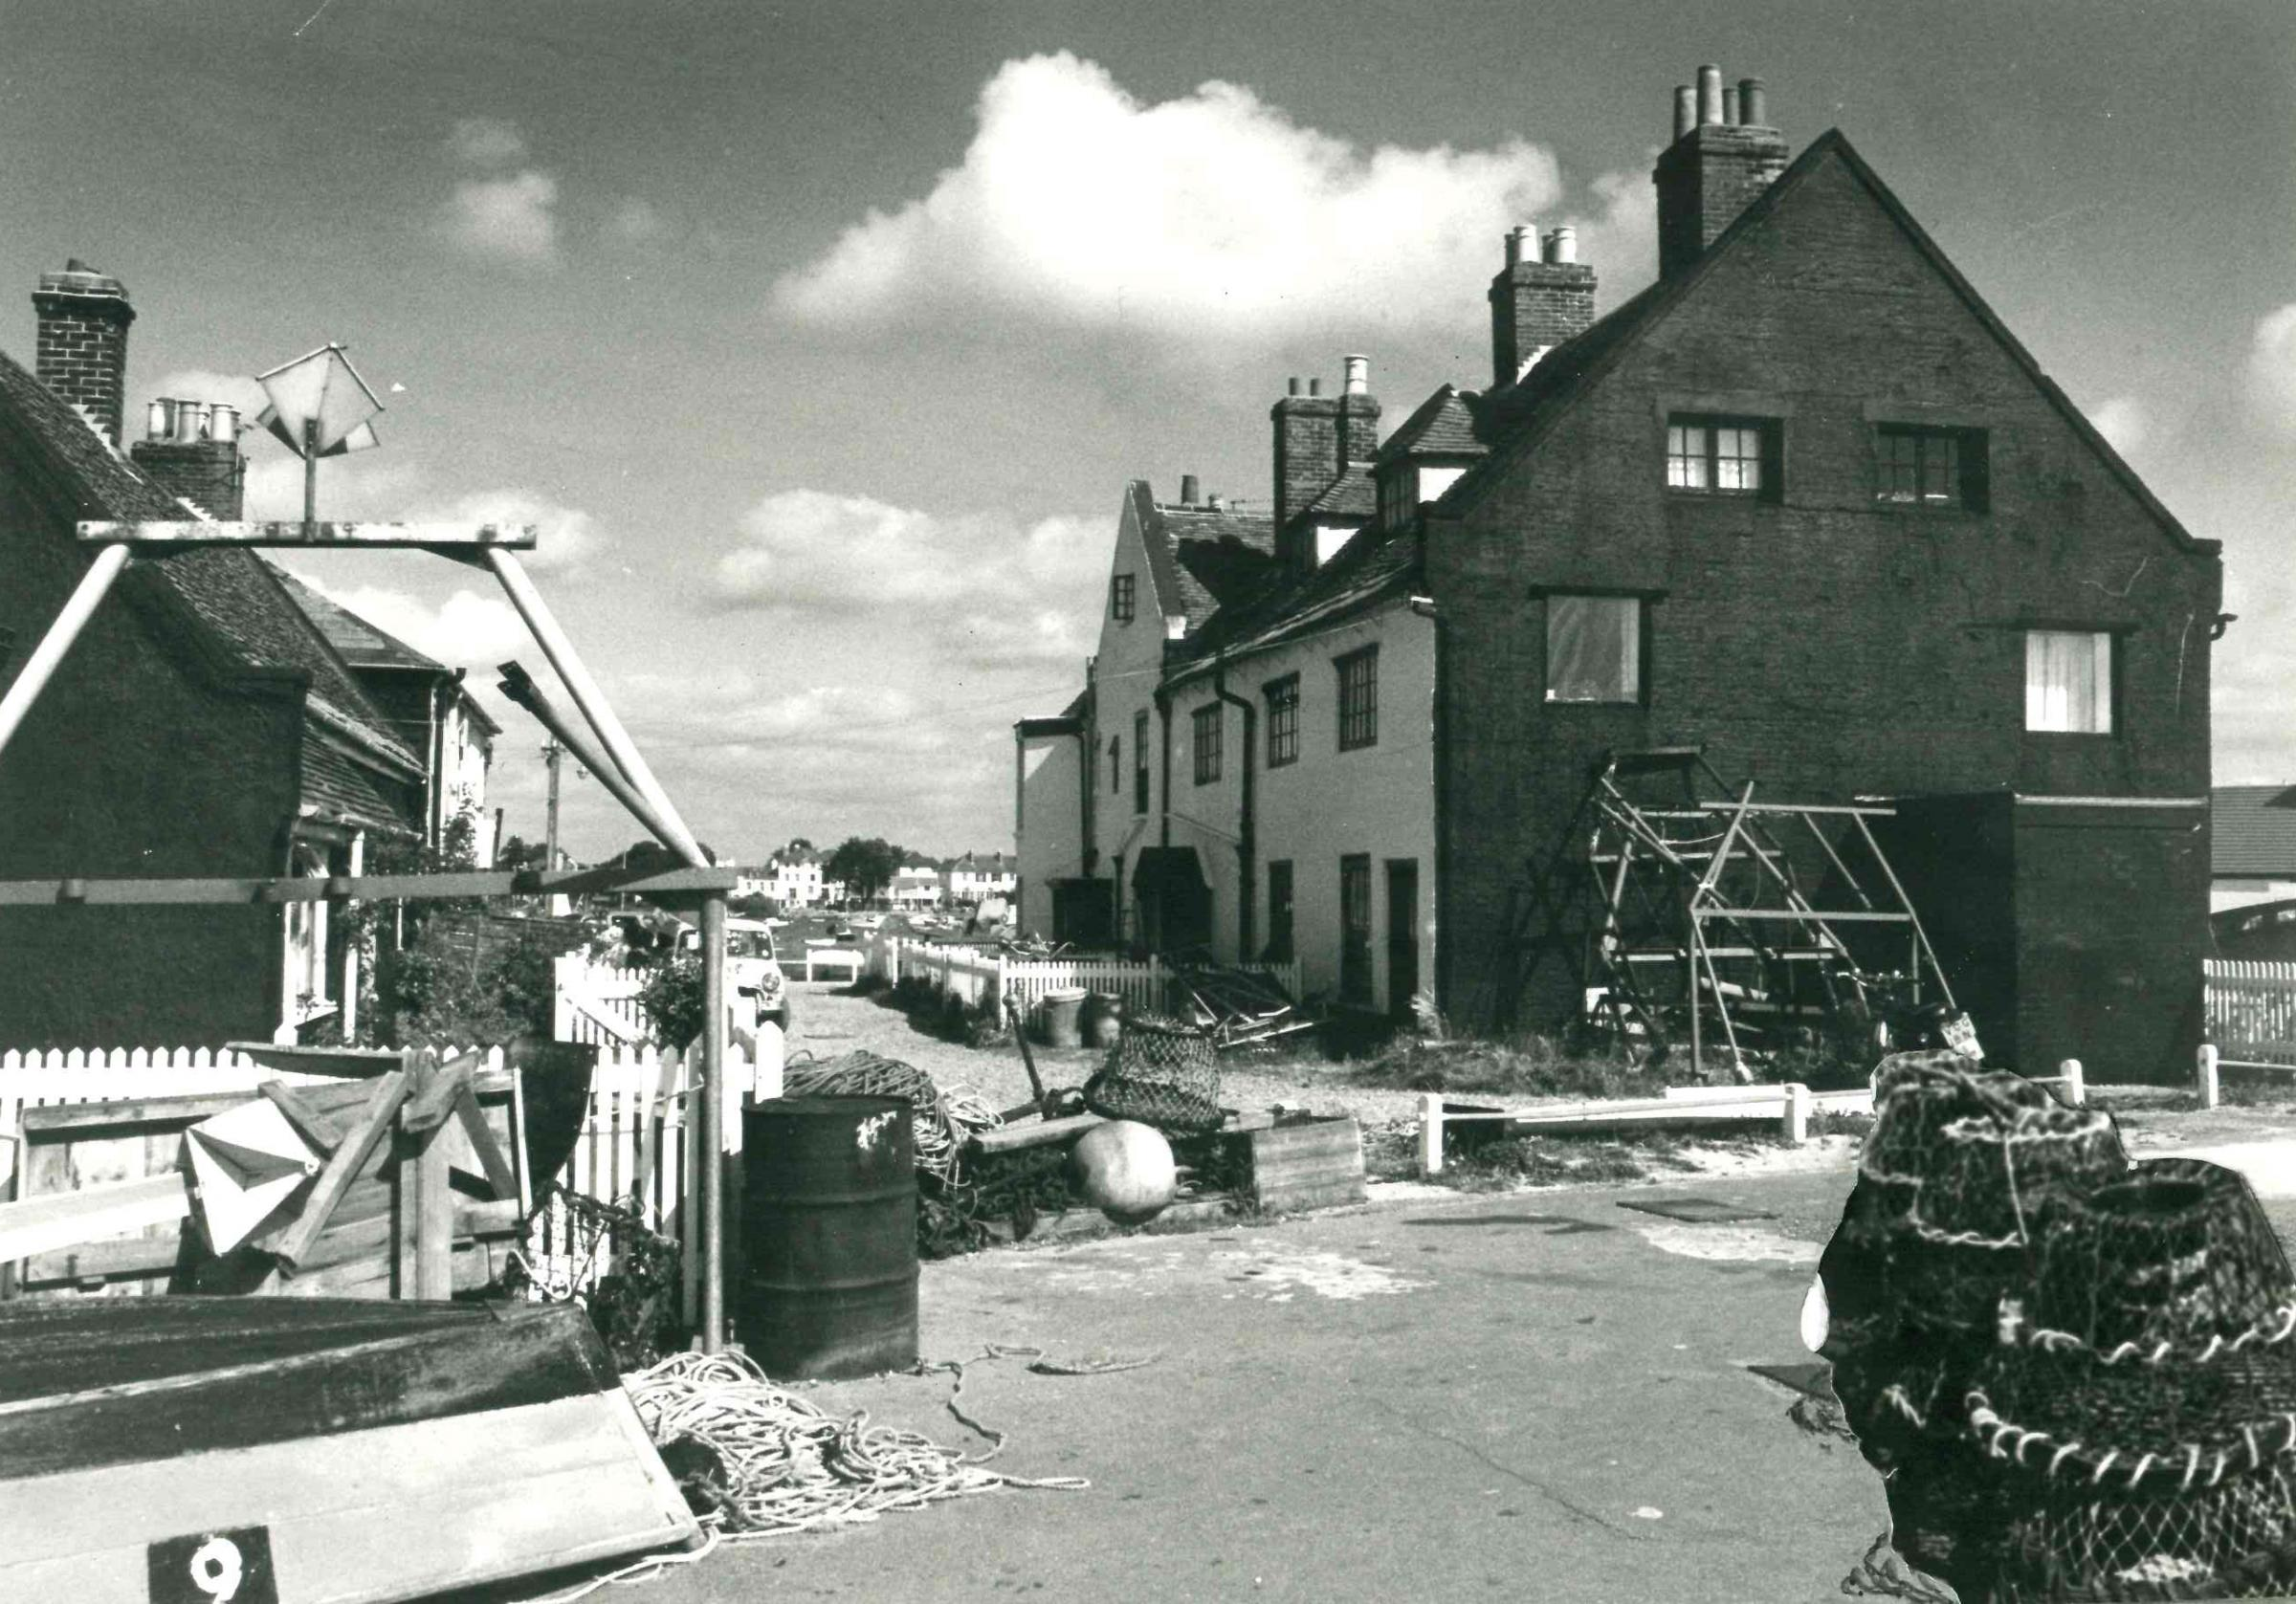 Mudeford Quay taken in September 1980. Picture: Bournemouth Daily Echo.